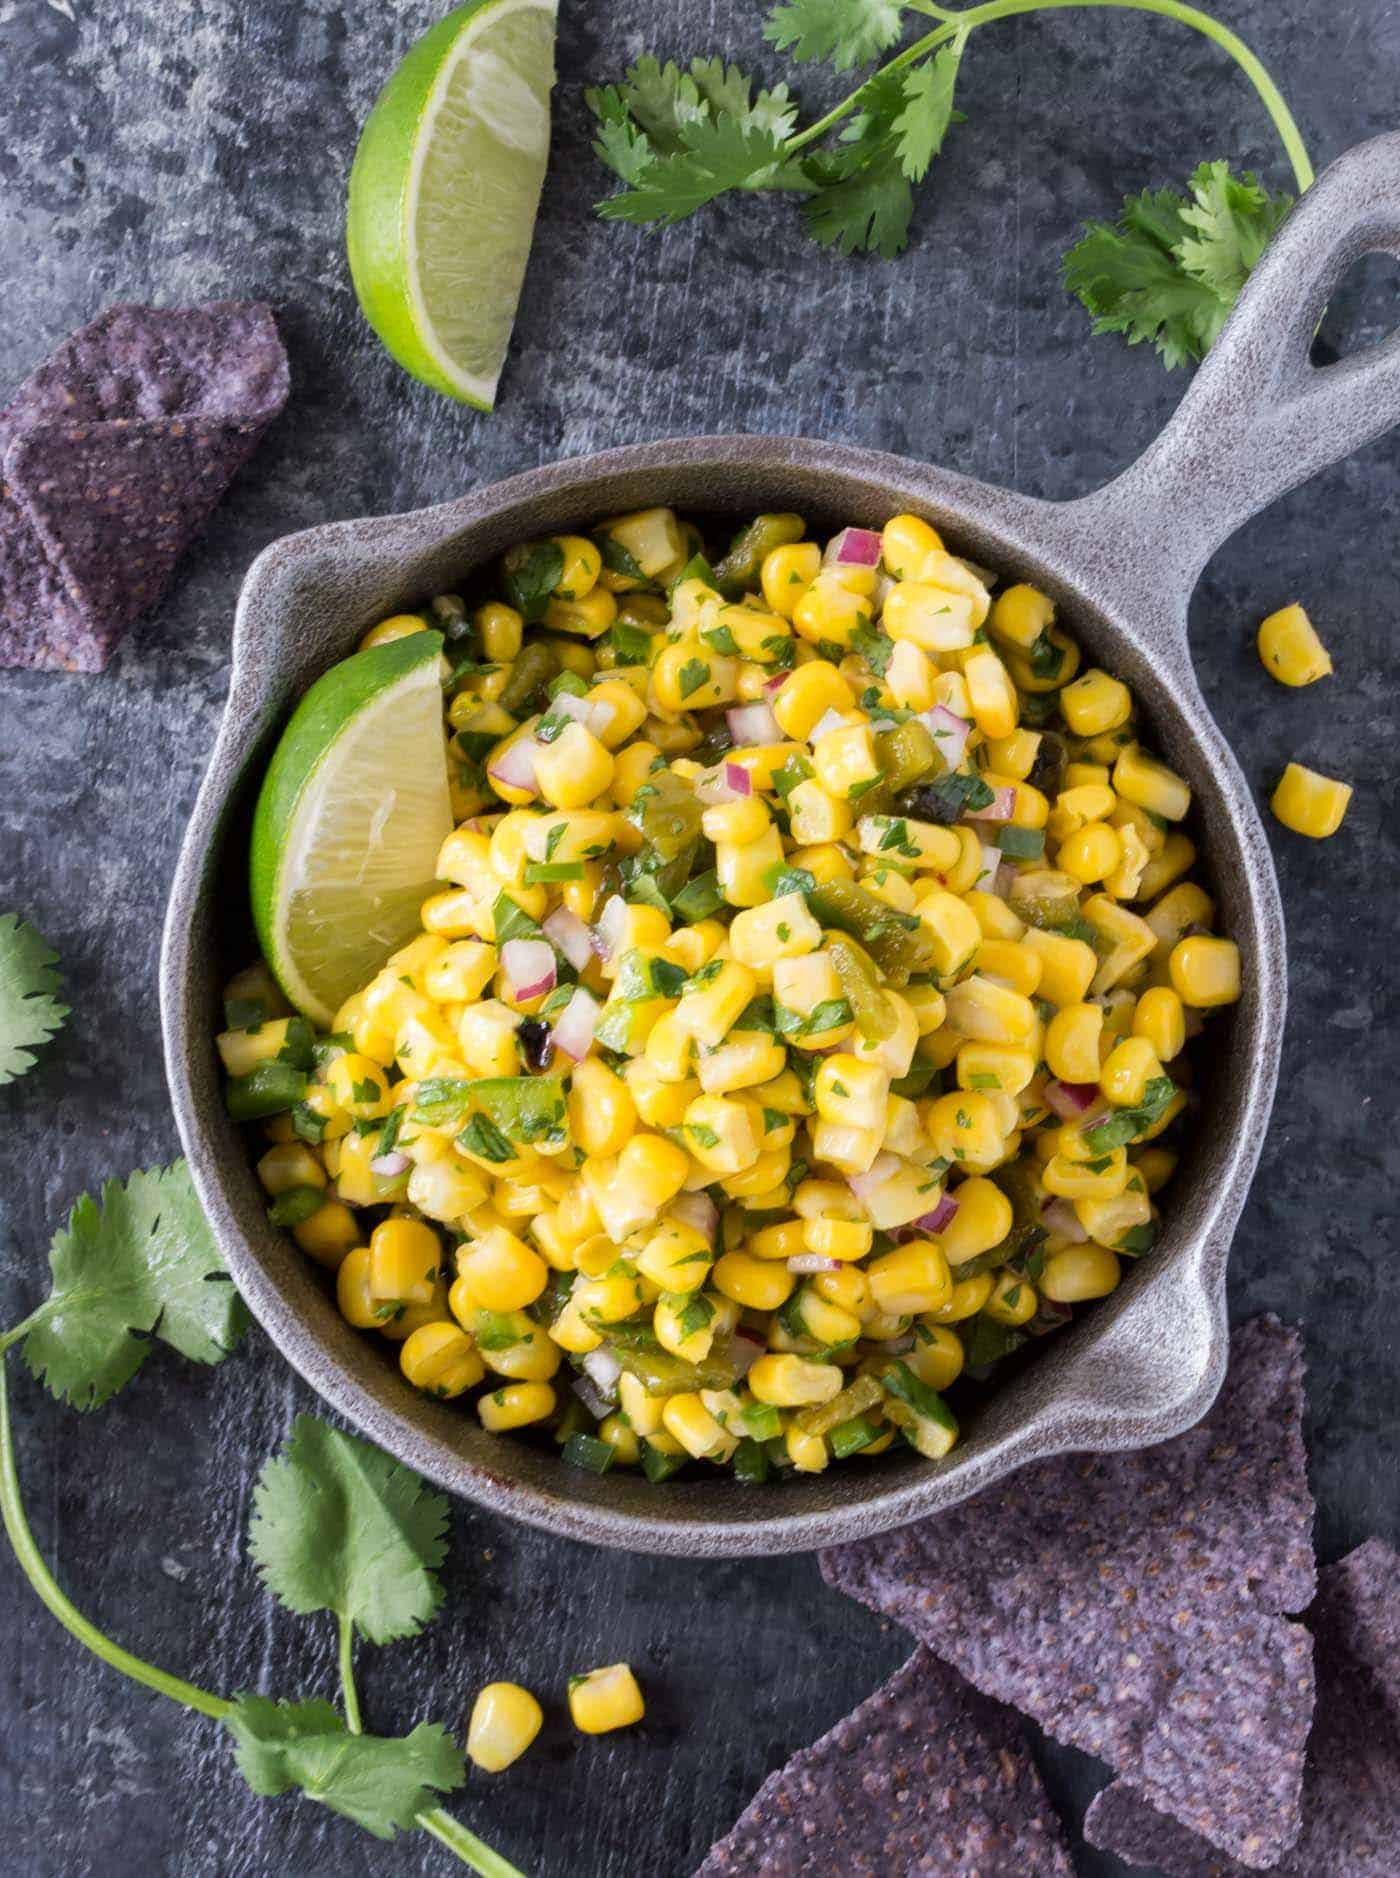 Bowl of Copycat Chipotle Corn Salsa recipe surrounded by chips, cilantro and lime wedges.